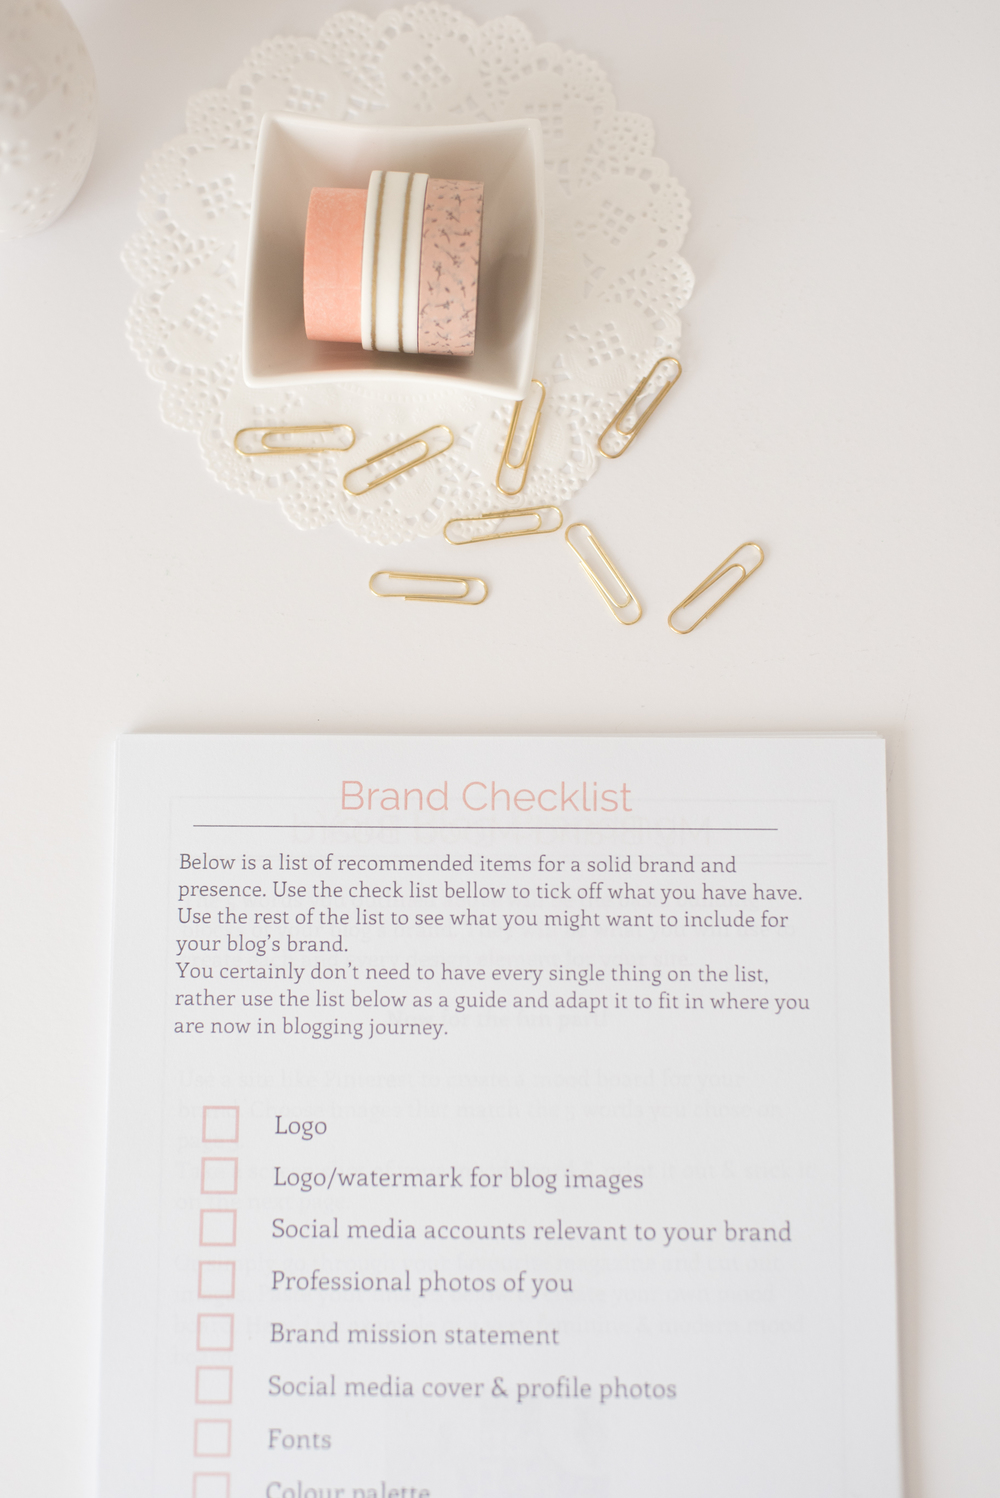 #BeautifyYourBlog Handguide for Bloggers byr Roxy Hutton of CityGirlSearching (16 of 25).JPG